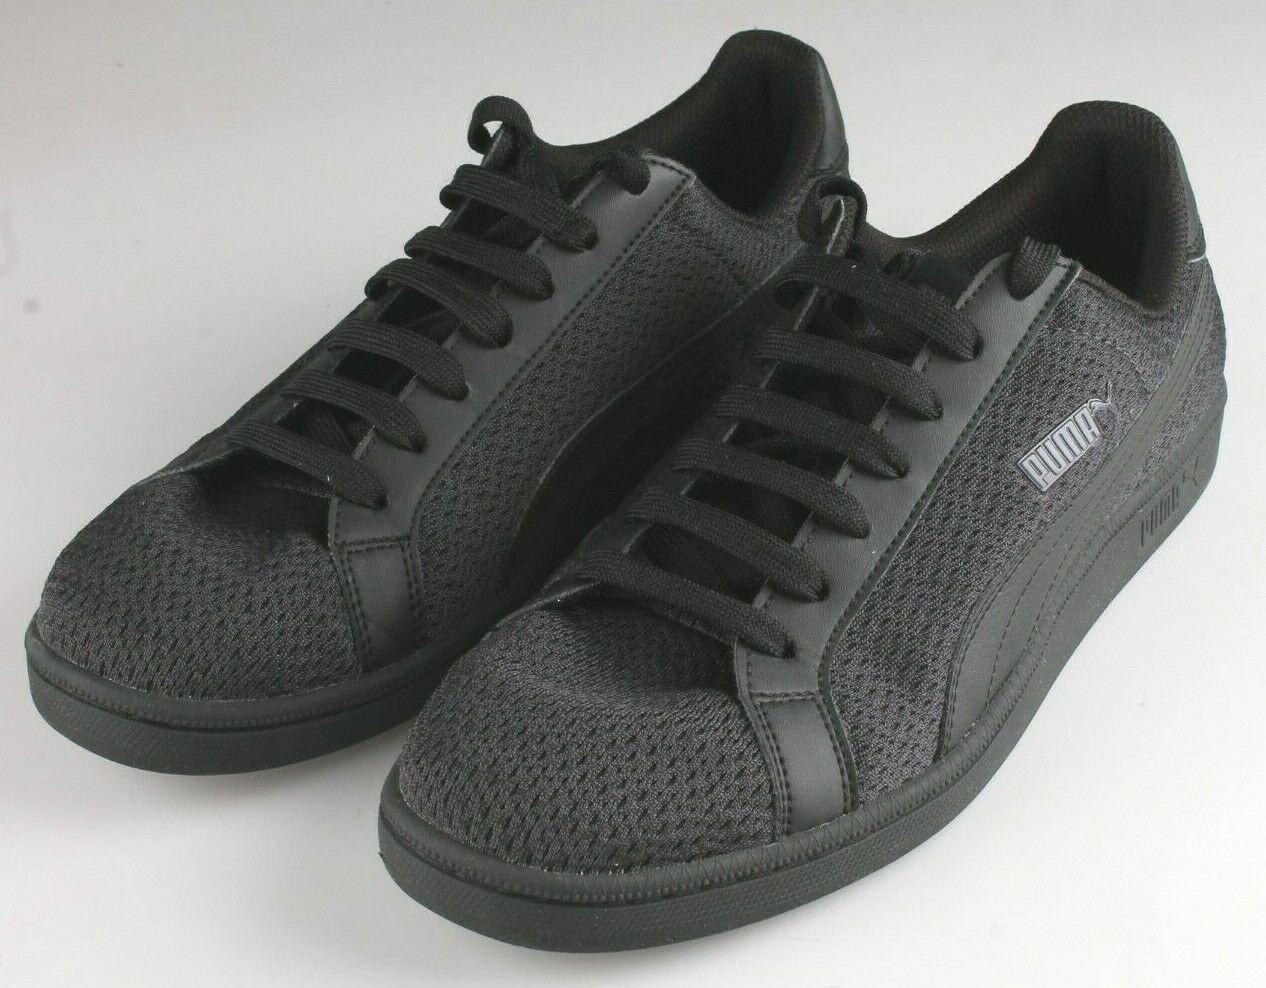 PUMA Men's Smash Knit C Black Casual Athletic Sneakers Gym Shoes